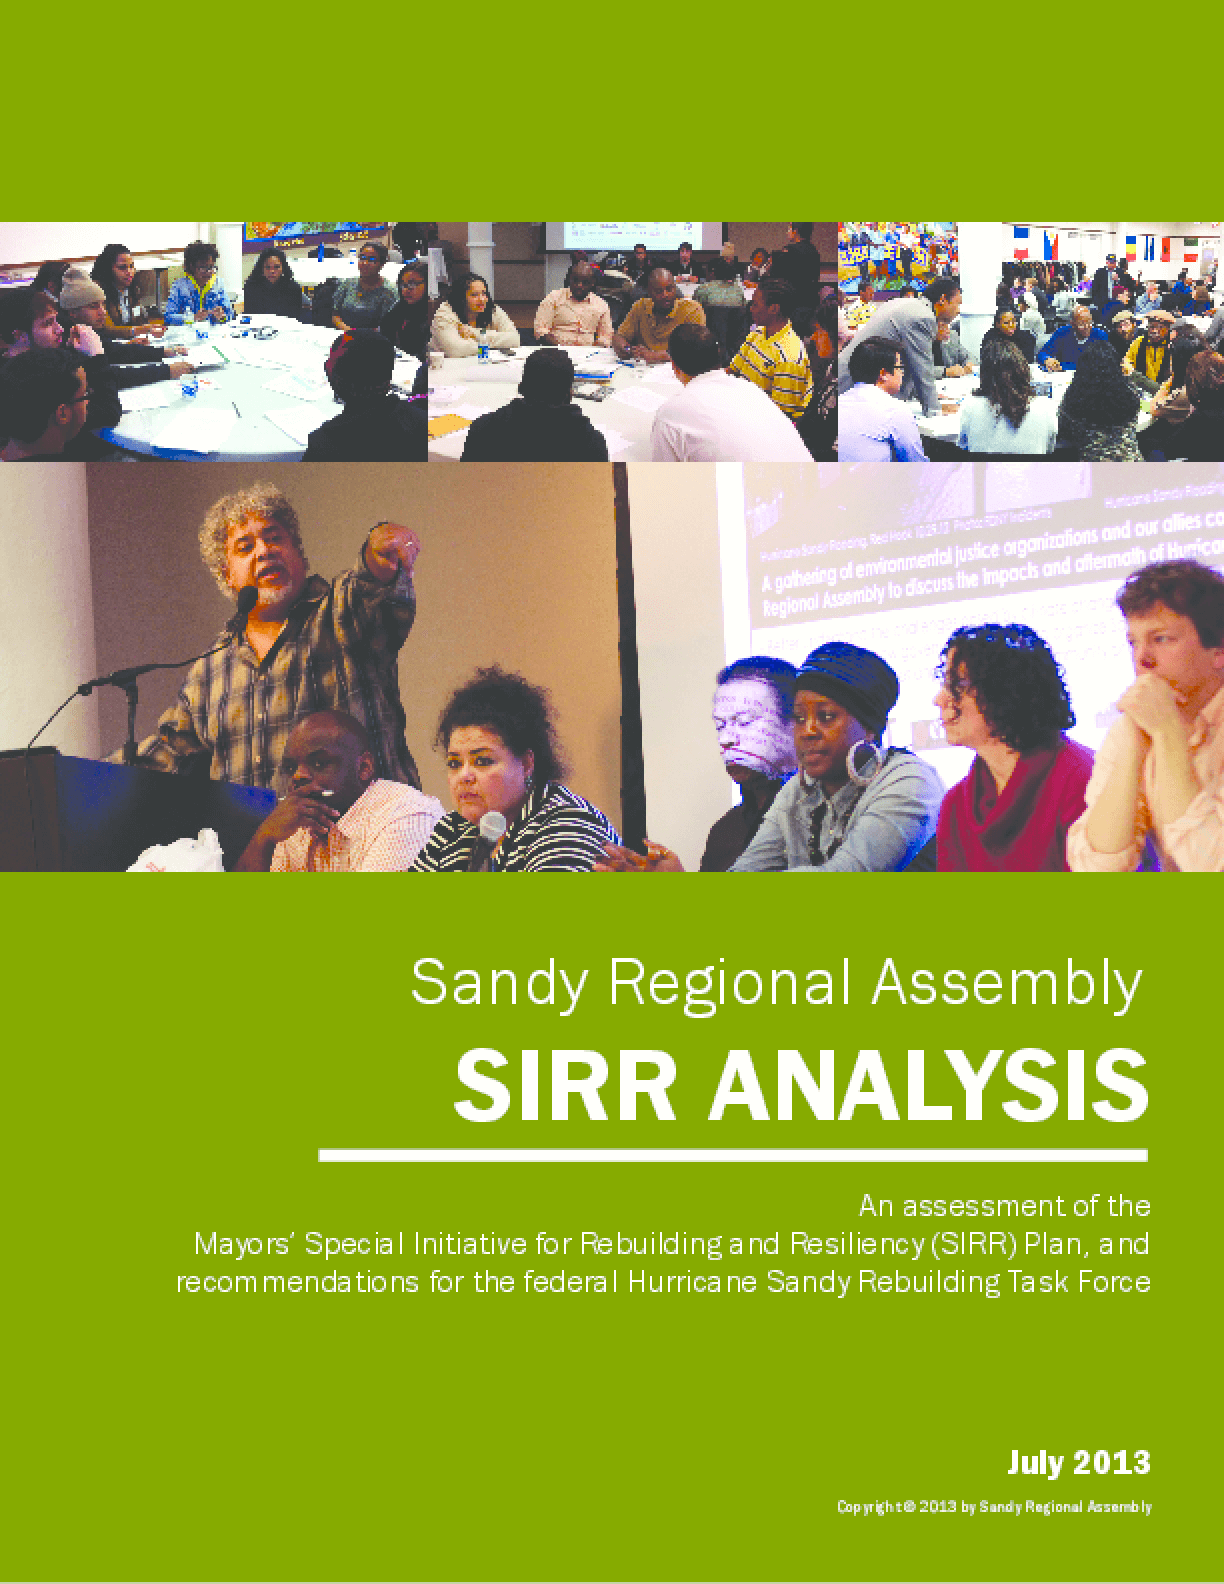 Sandy Regional Assembly SIRR Analysis